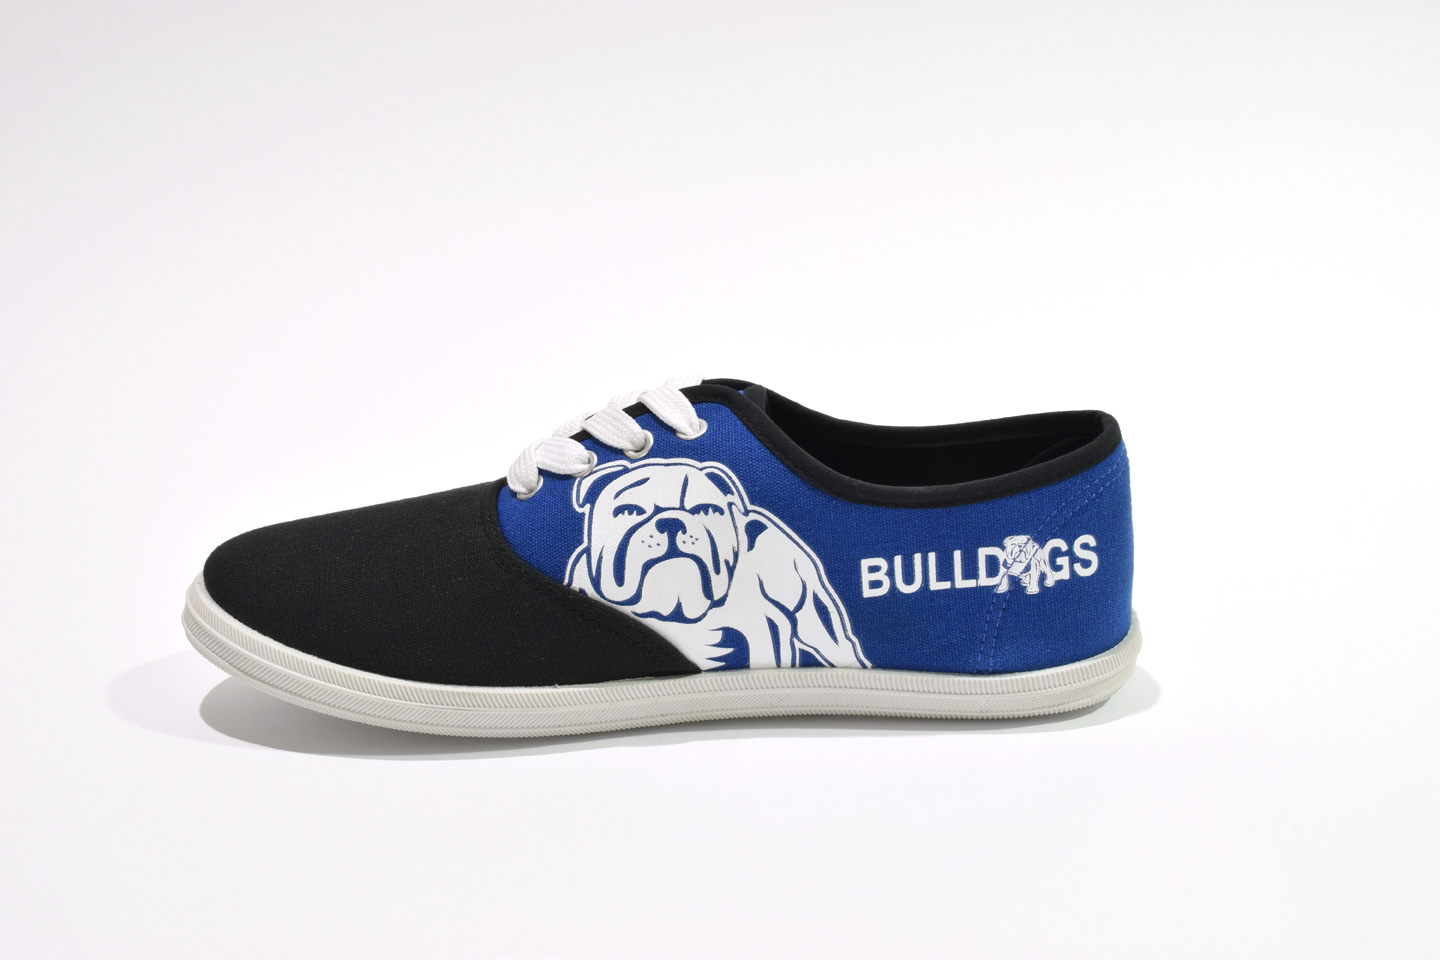 Bulldogs 10 copy